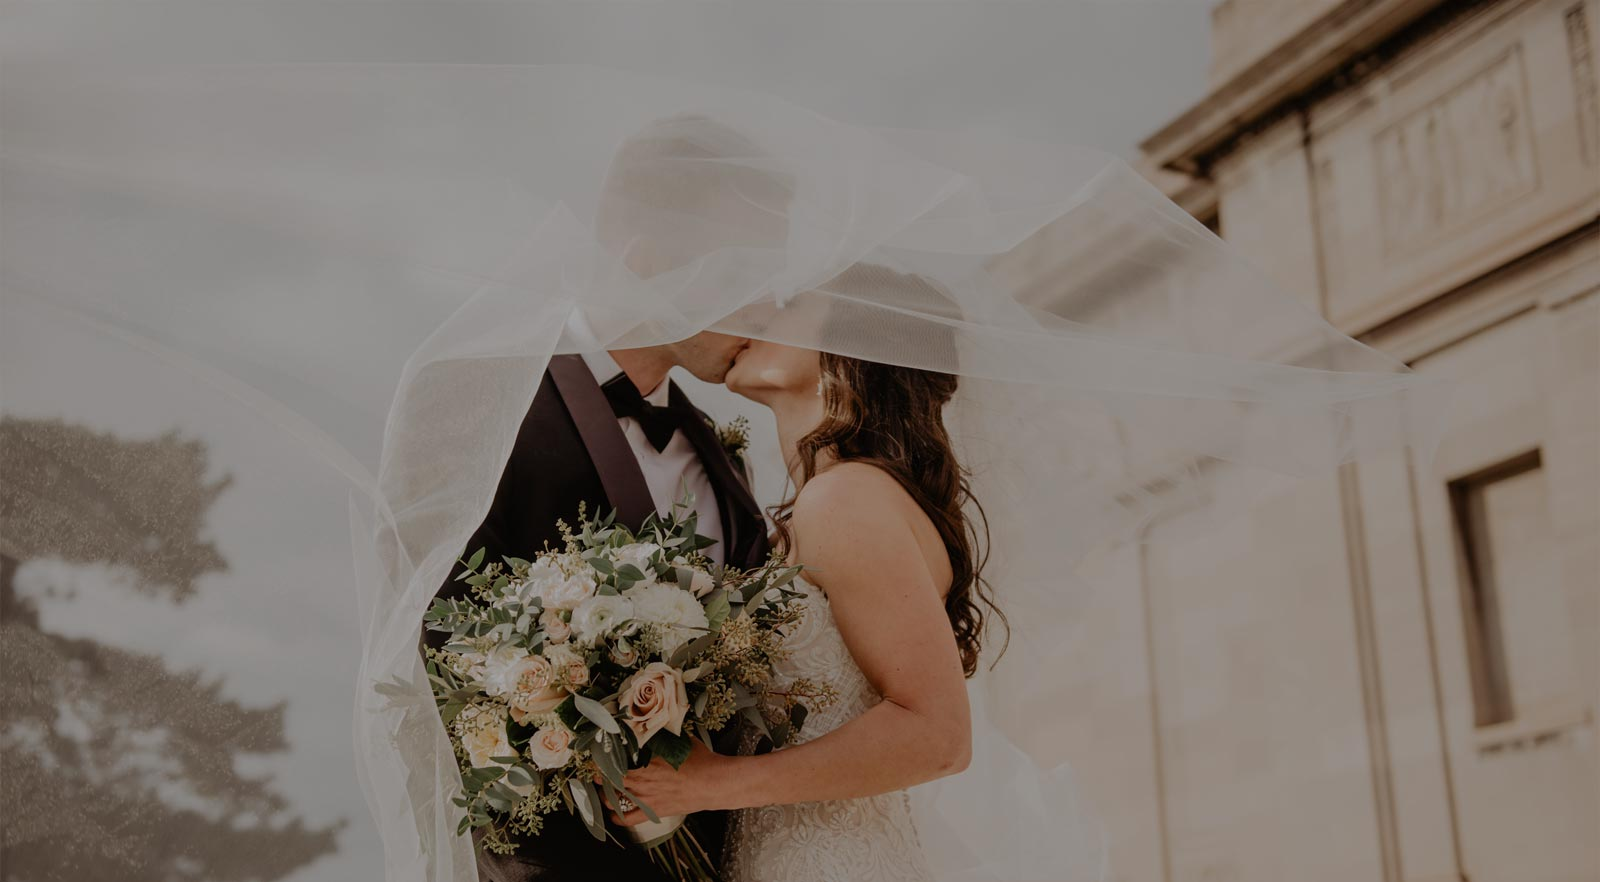 Photo of a bride and groom kissing as the bride's veil swirls around the newlywed couple